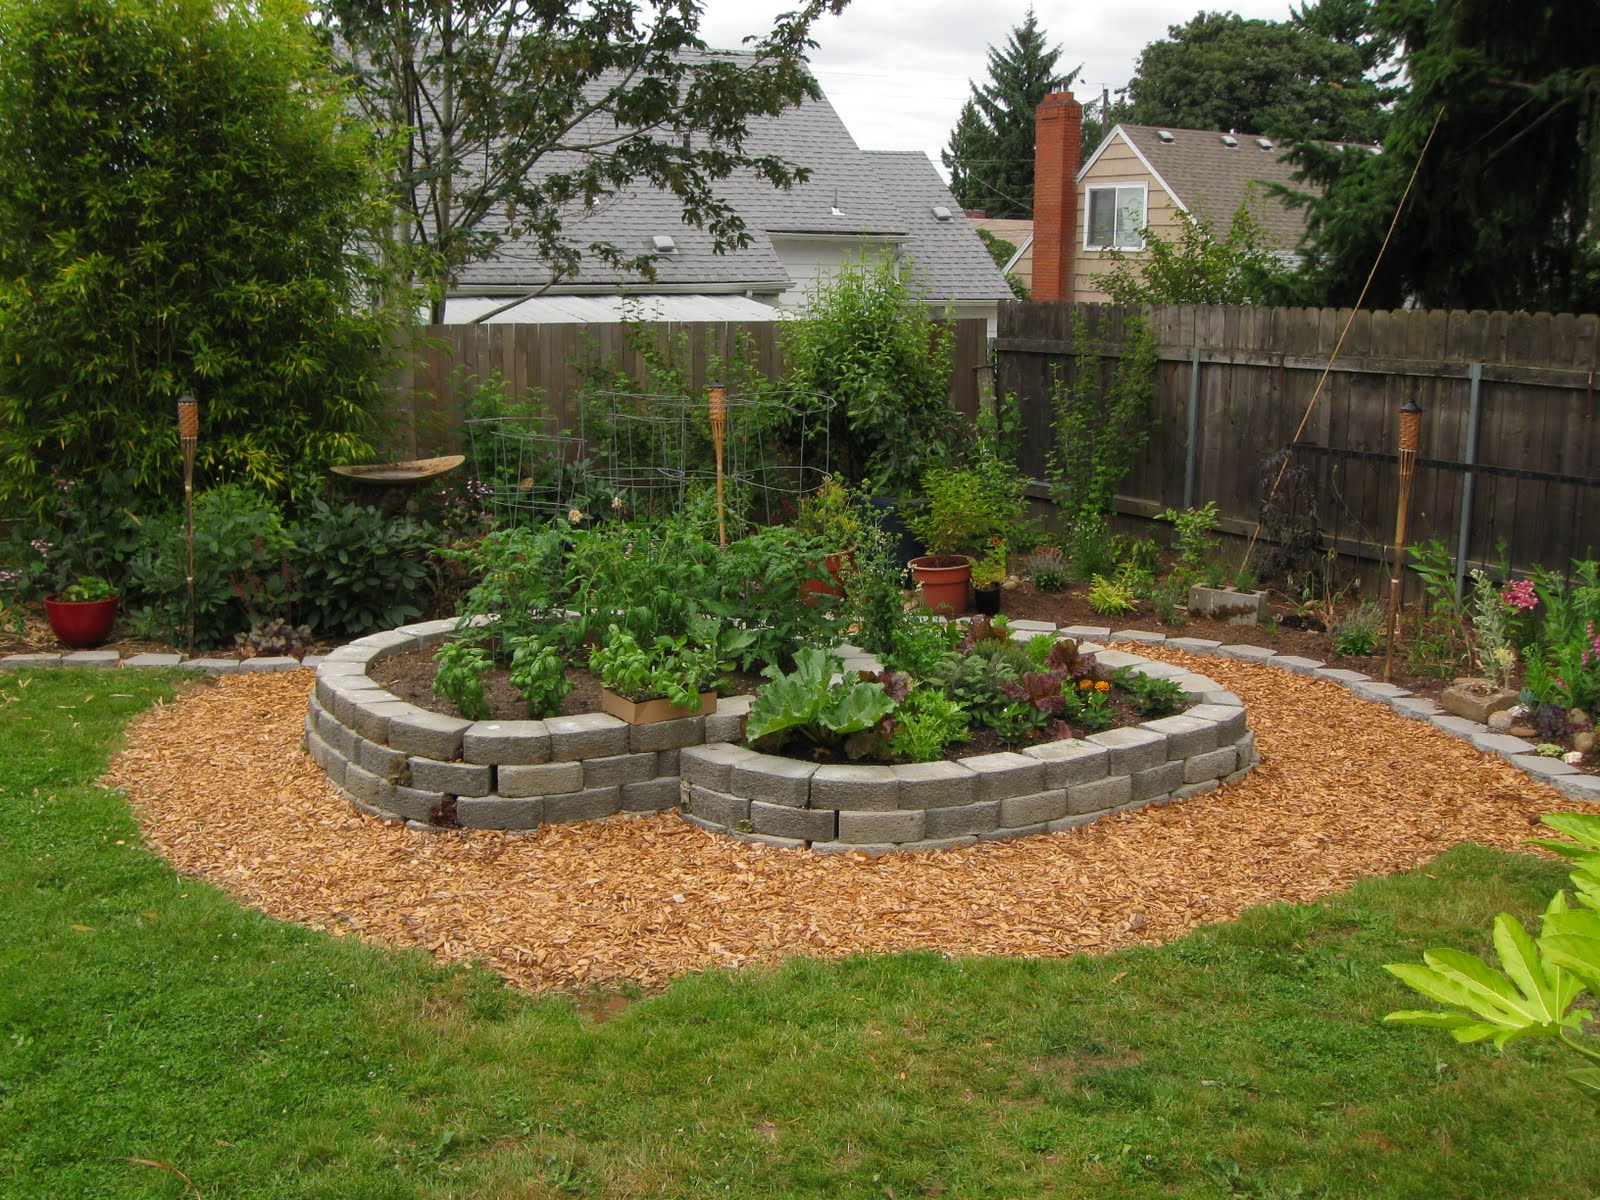 Simple landscaping ideas with low maintenance design and for Landscaping ideas